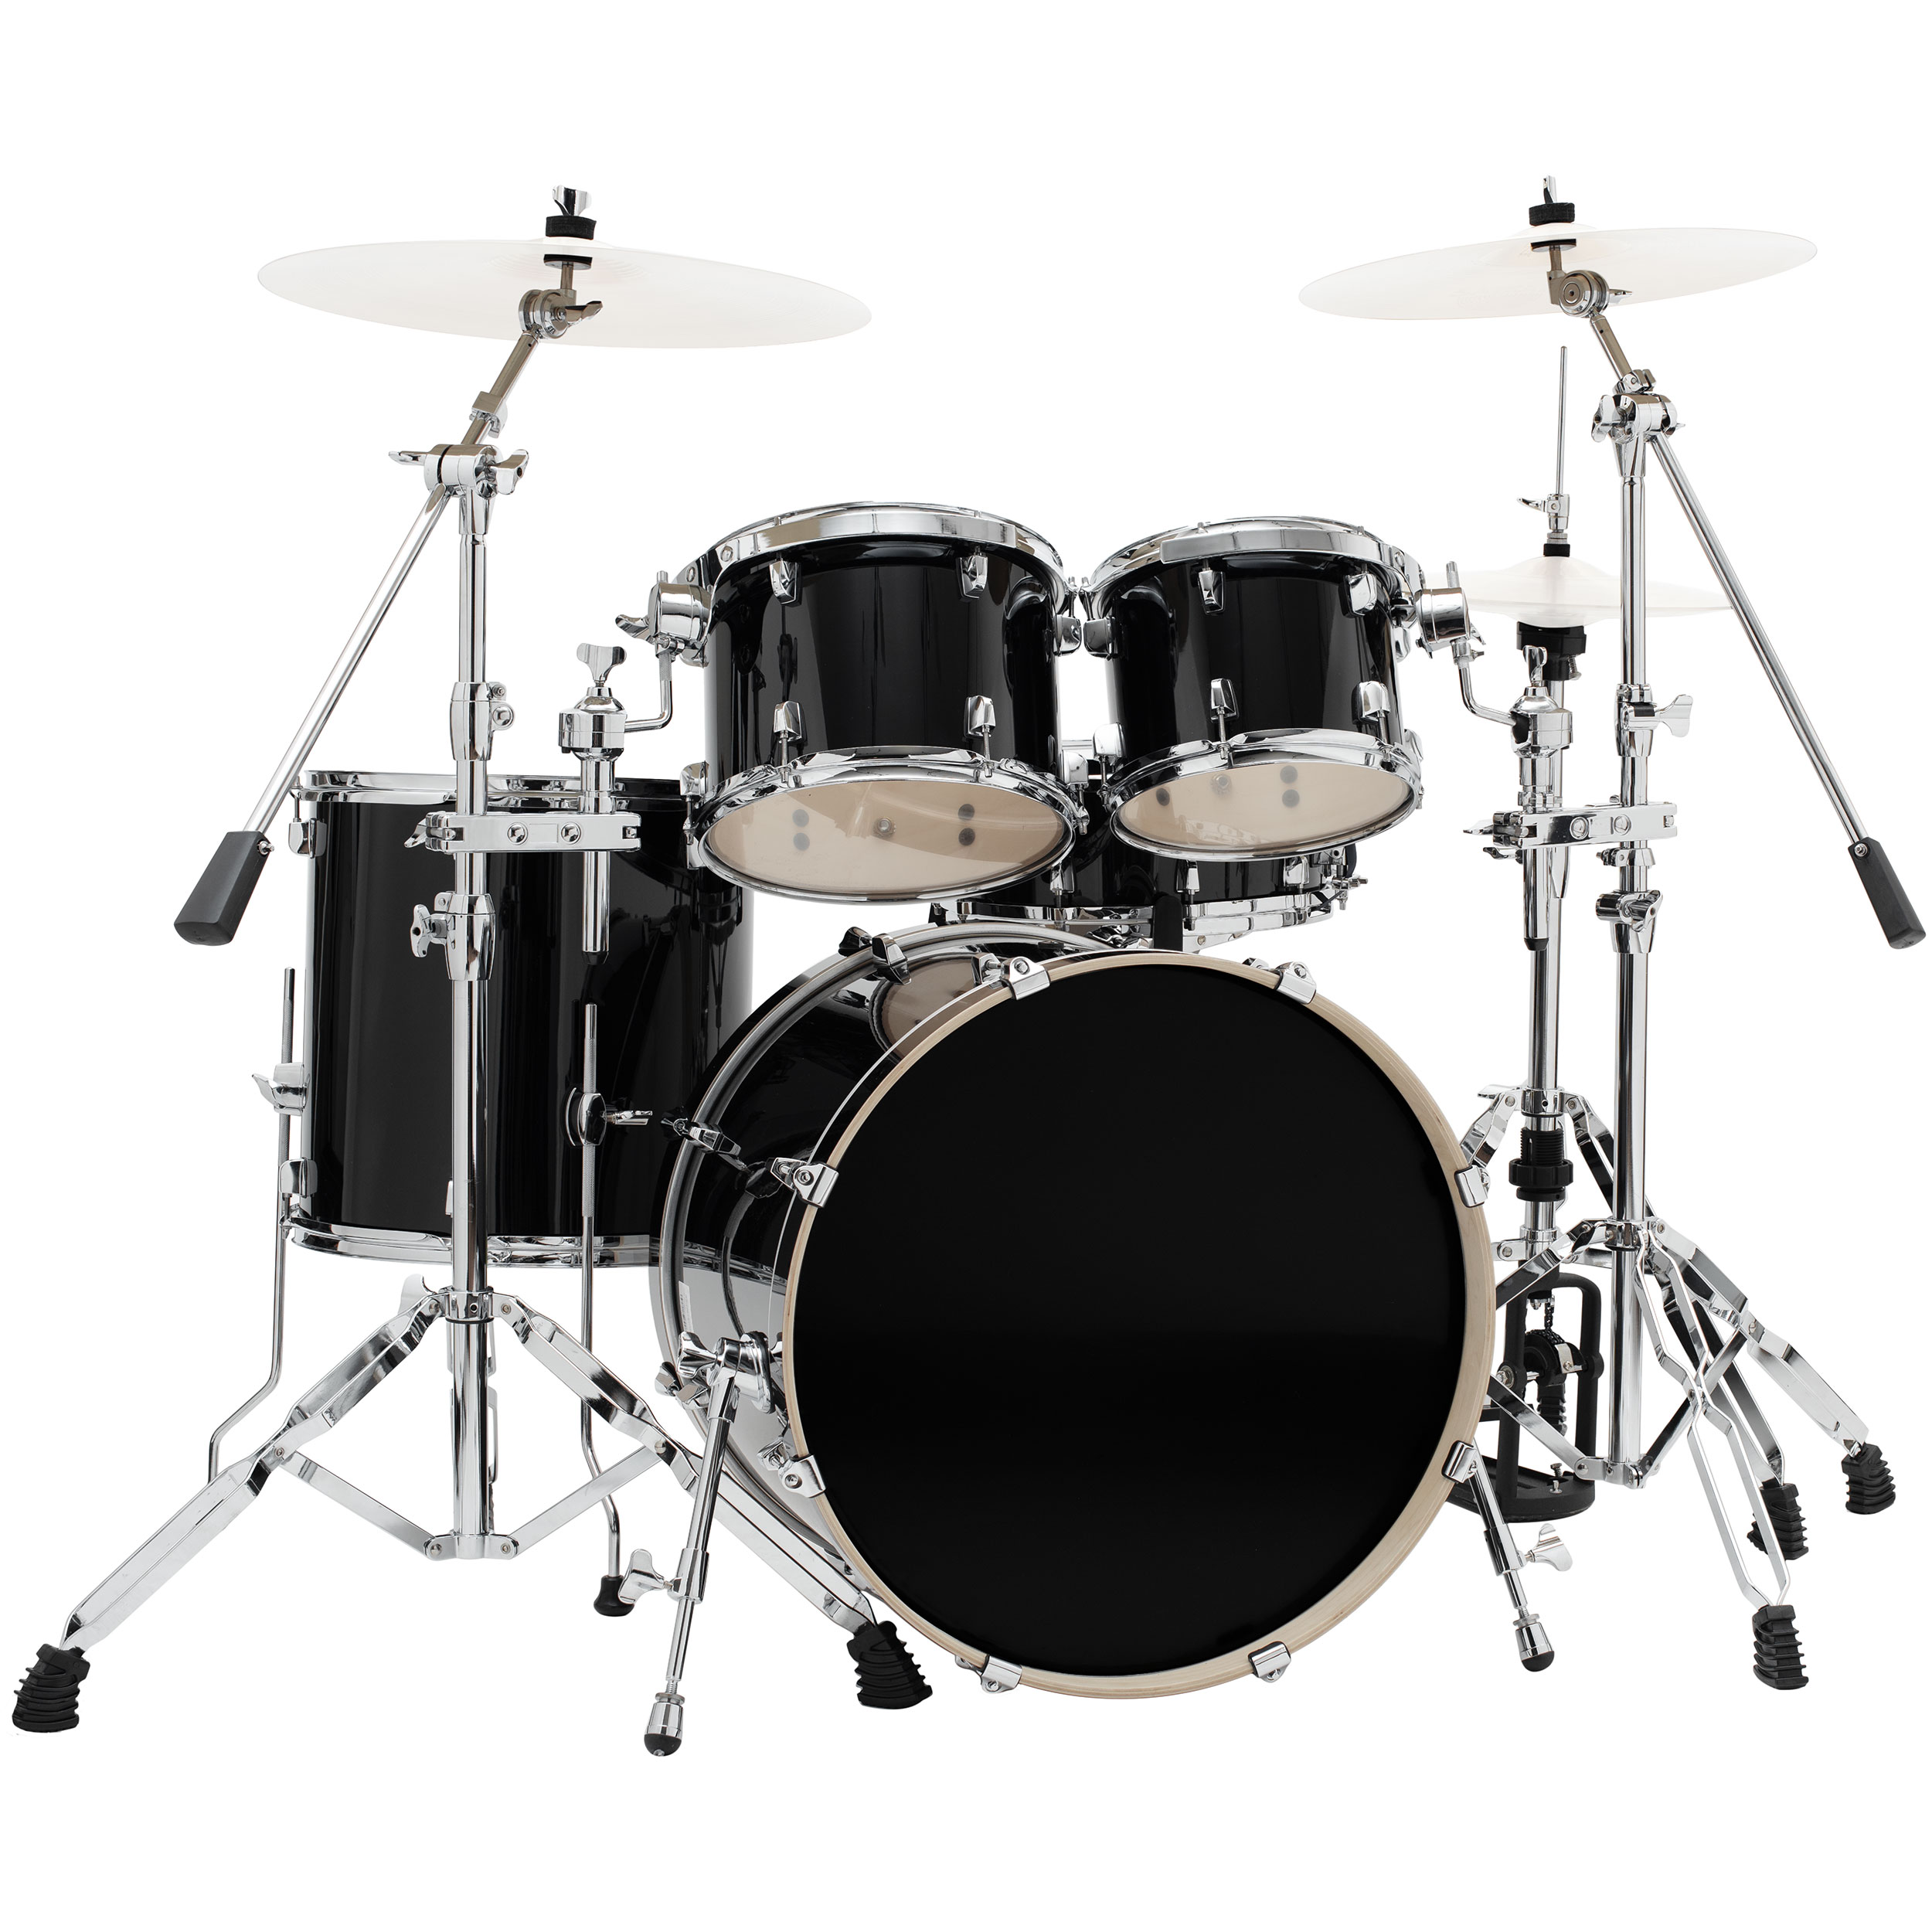 """System Blue 5-Piece Drum Set with Hardware (22"""" Bass, 10/12/16"""" Toms, 14"""" Snare Drum)"""